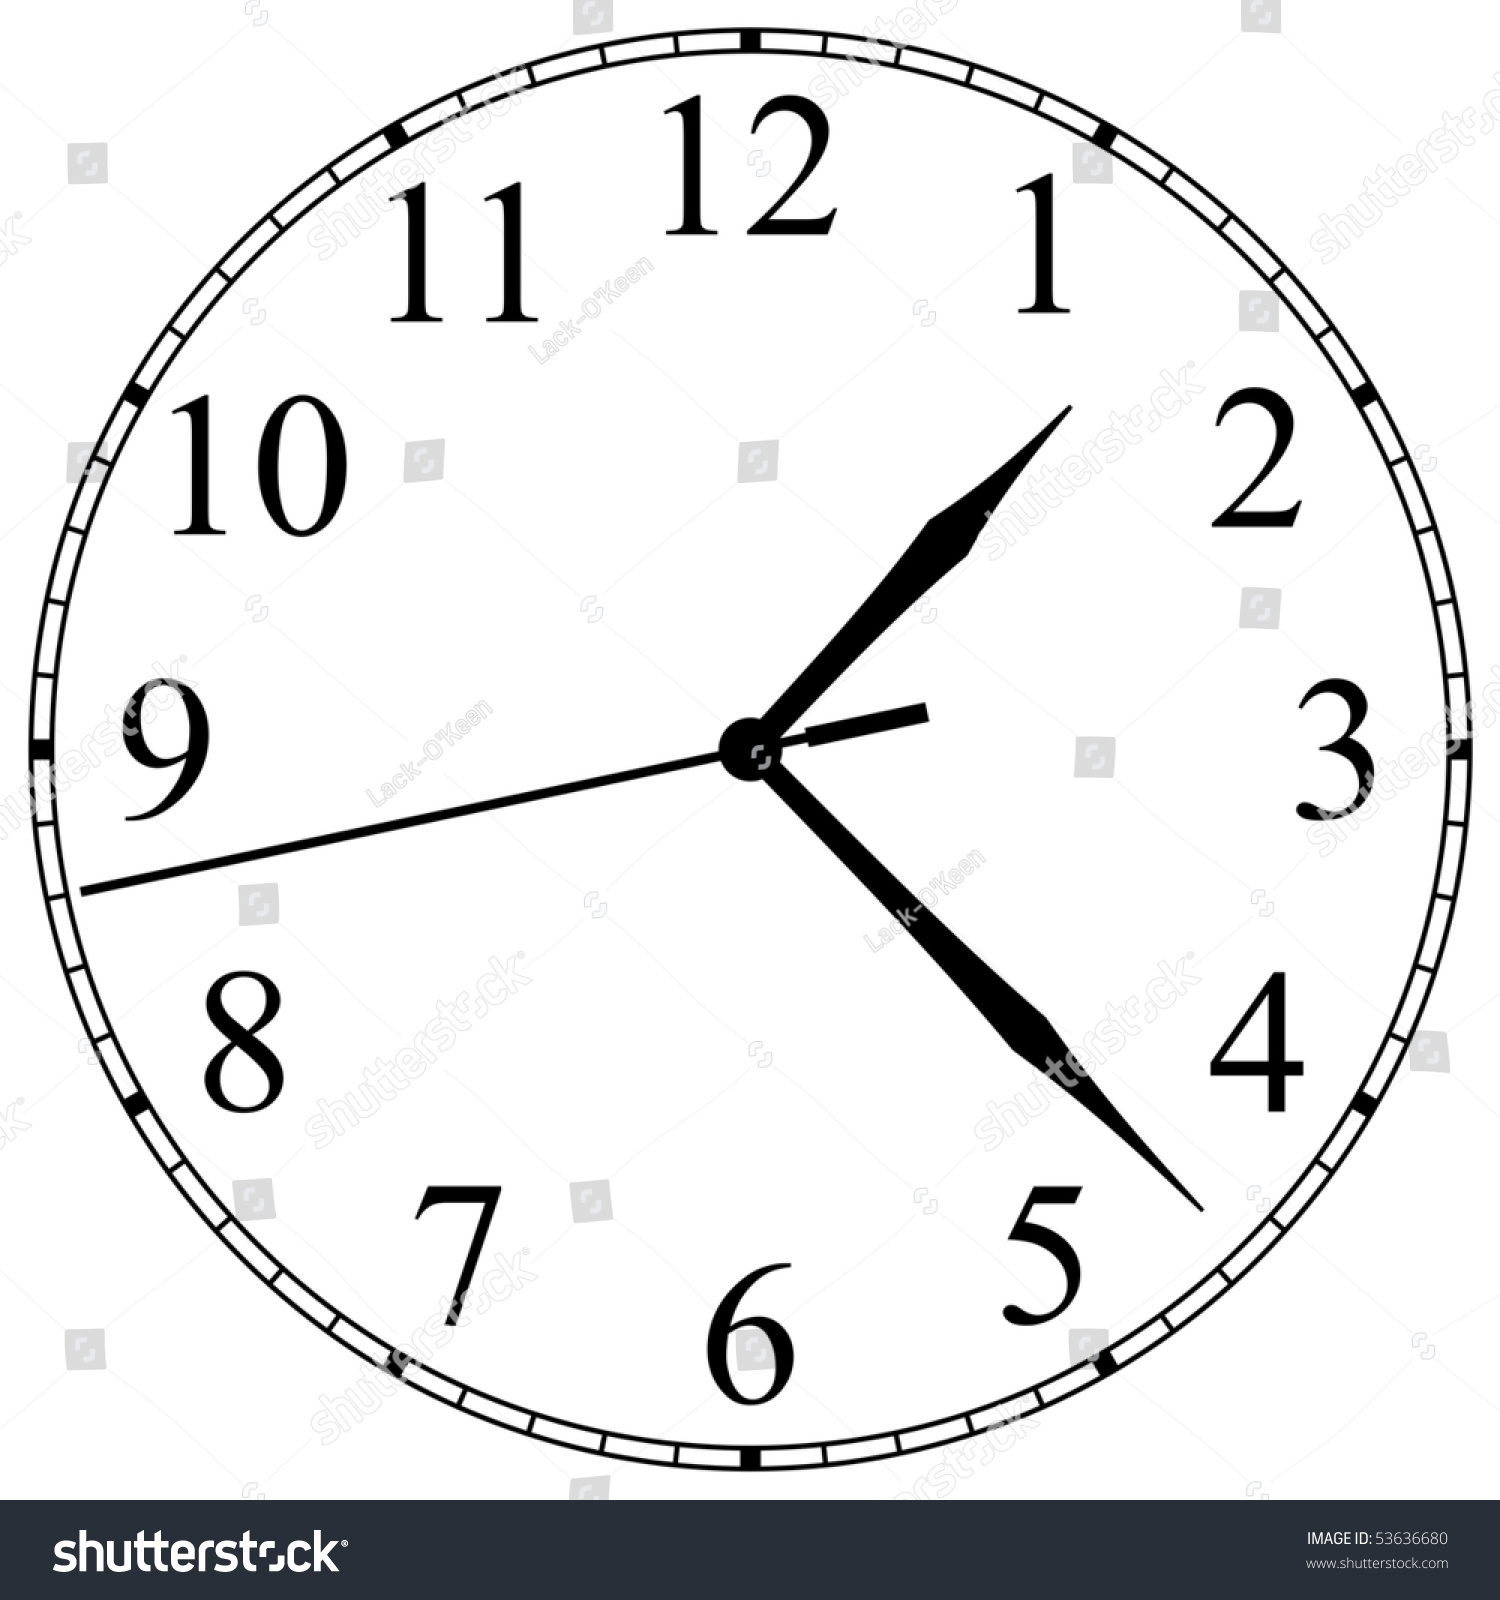 worksheet Clock Face clockface stock vector 53636680 shutterstock clock face